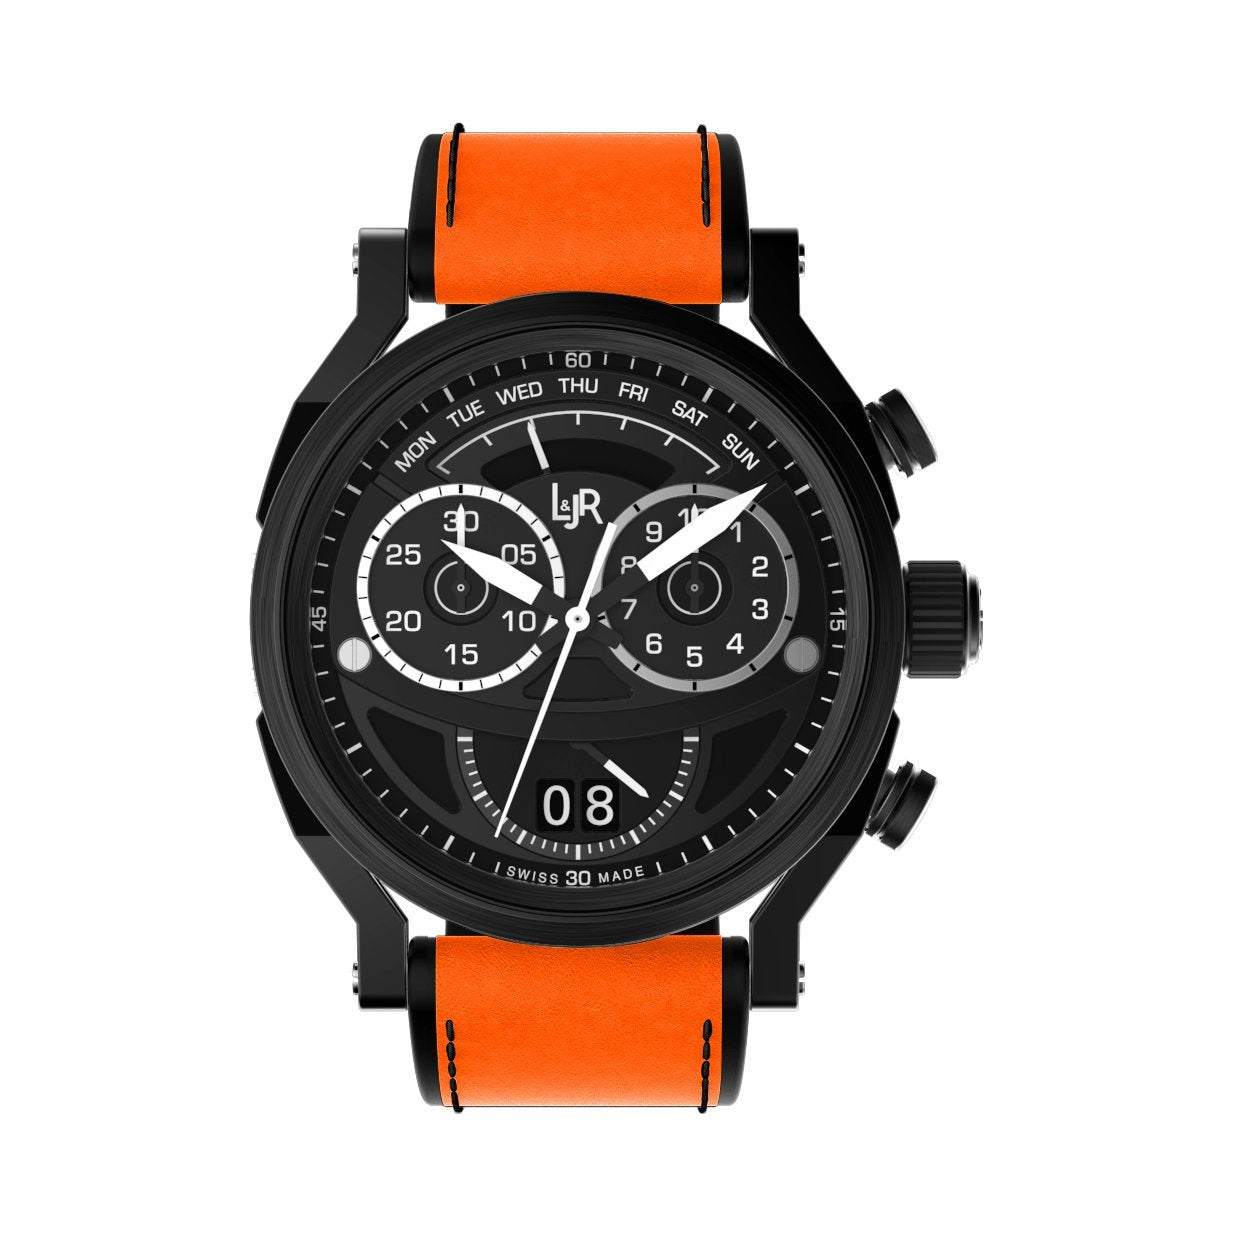 L&Jr Chronograph Day and Date Black PVD Orange - Watches & Crystals